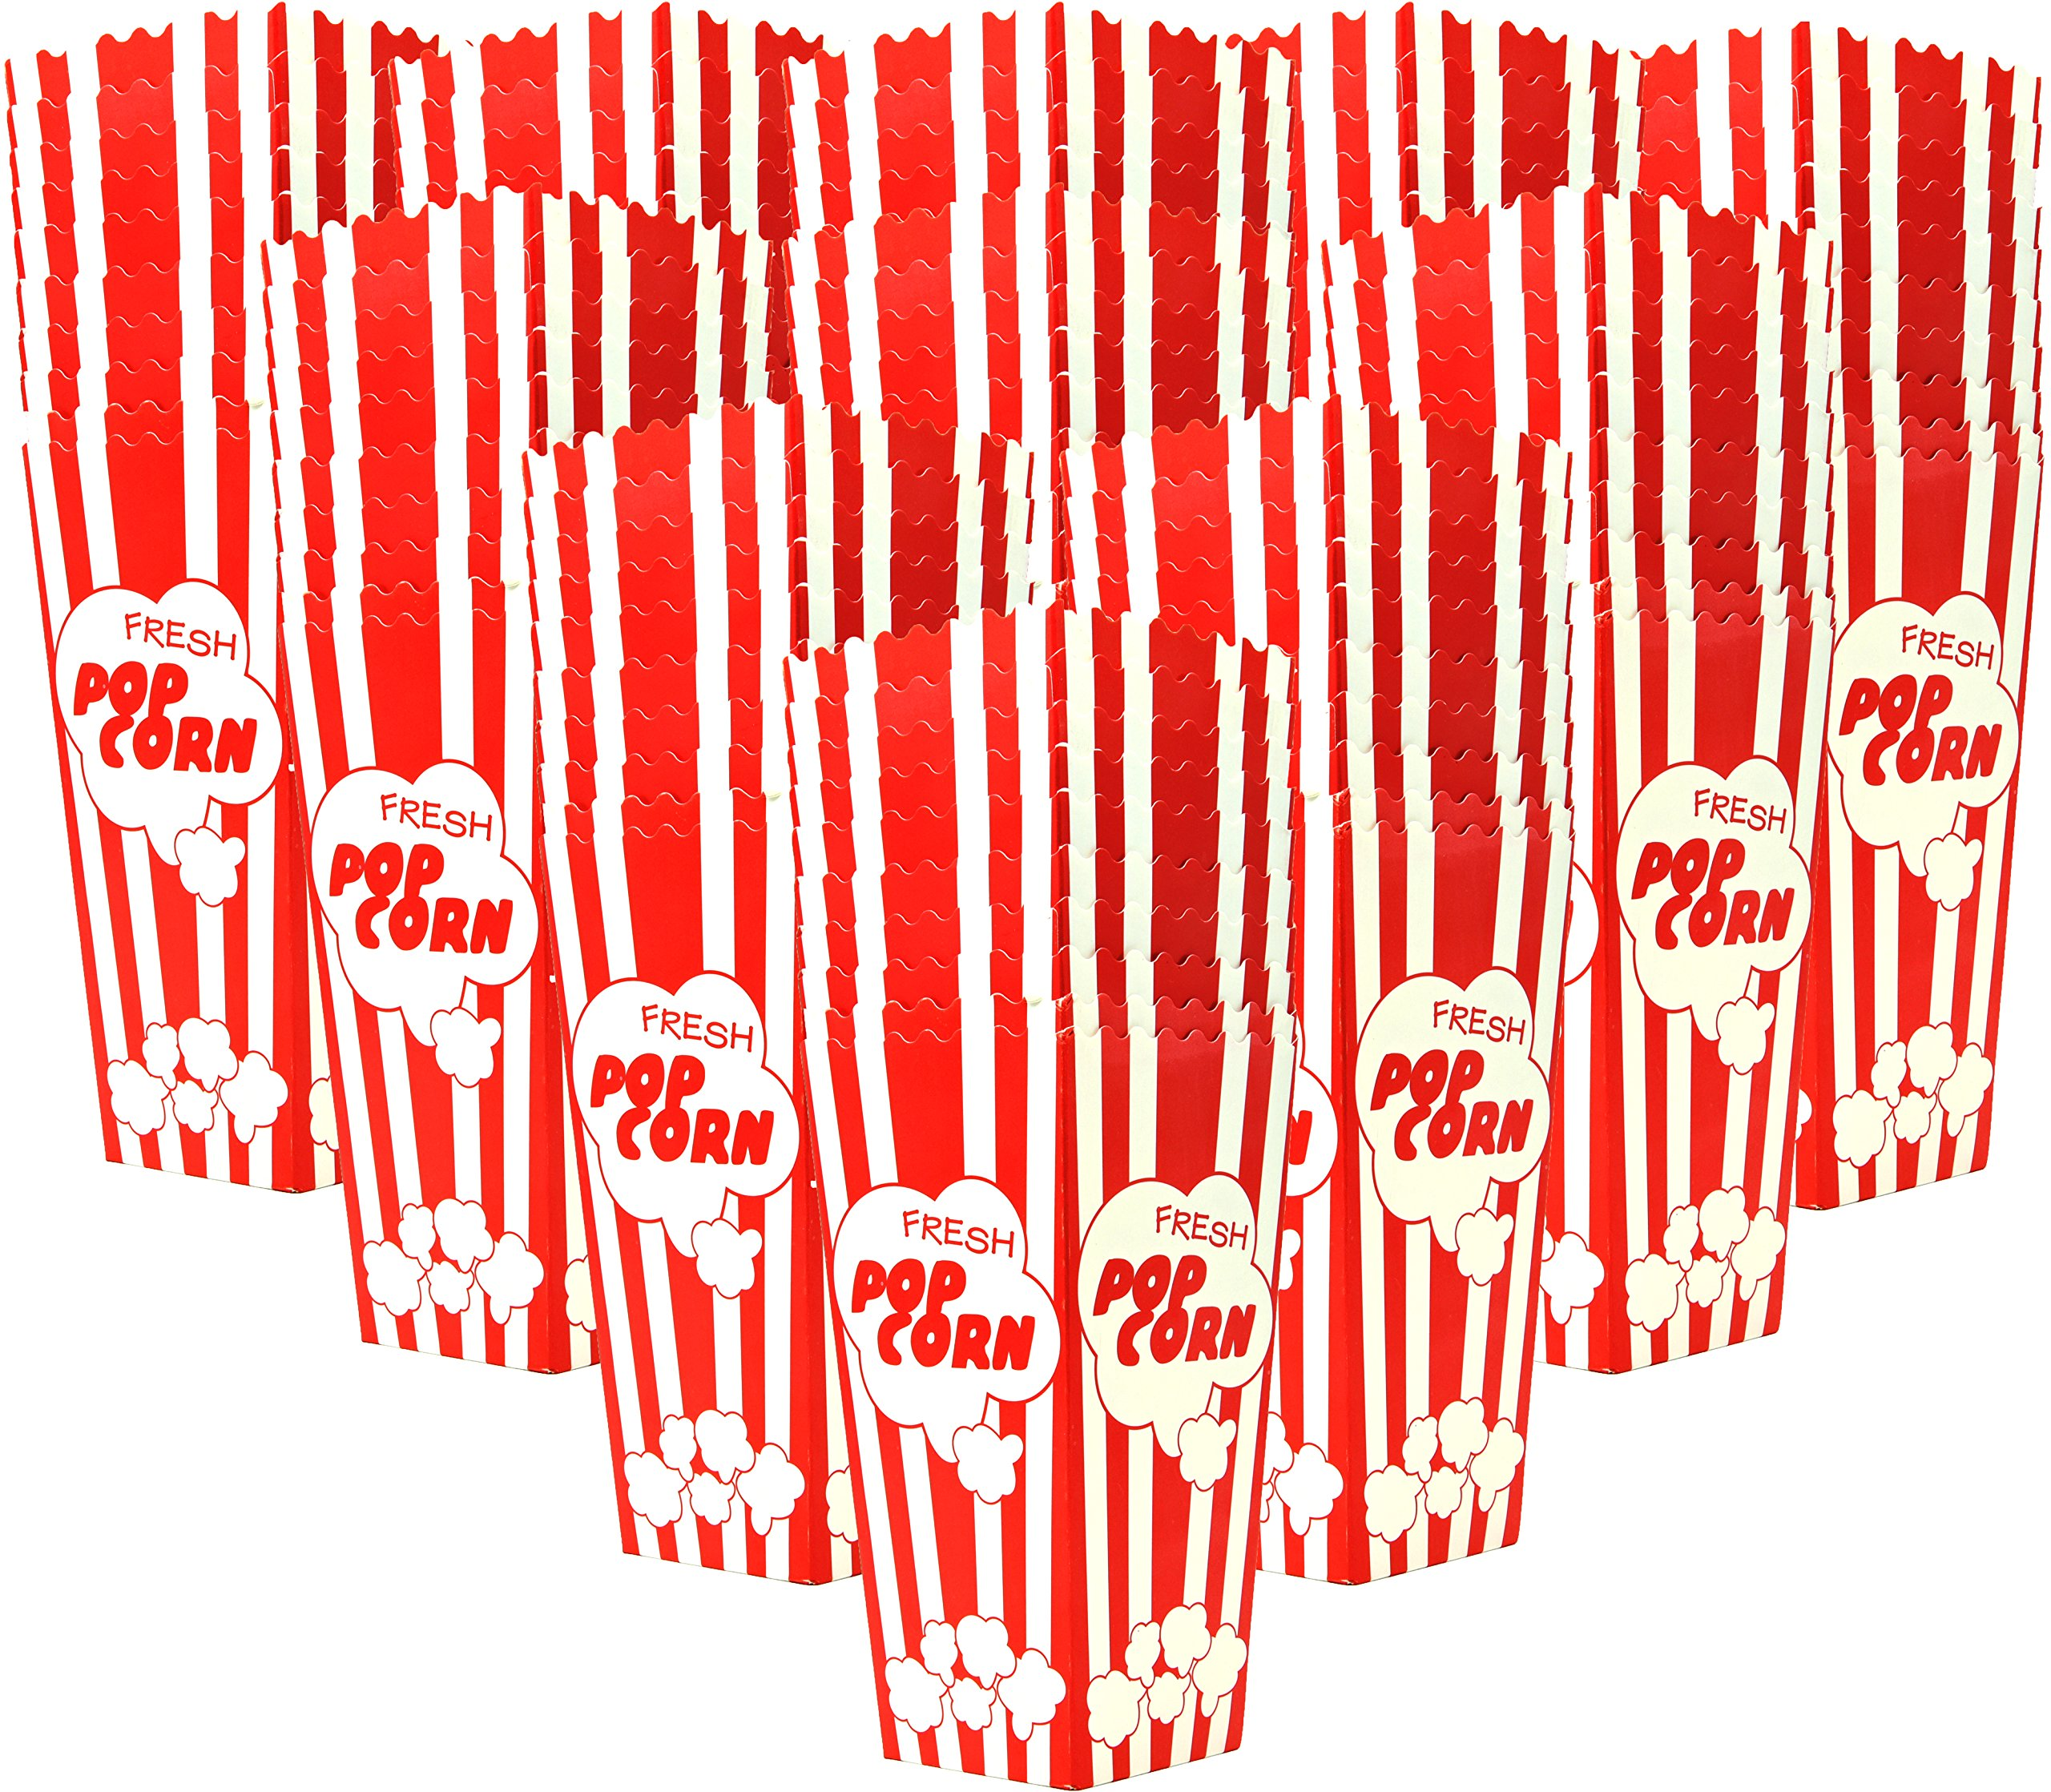 110 Popcorn Boxes, 7.75'' Huge Tall and Holds 46 Oz. with Old Fashion Vintage Retro Design with Red and White Colored Nostalgic Carnival Stripes Alternative to Popcorn Bags and Popcorn Tubs by Salbree